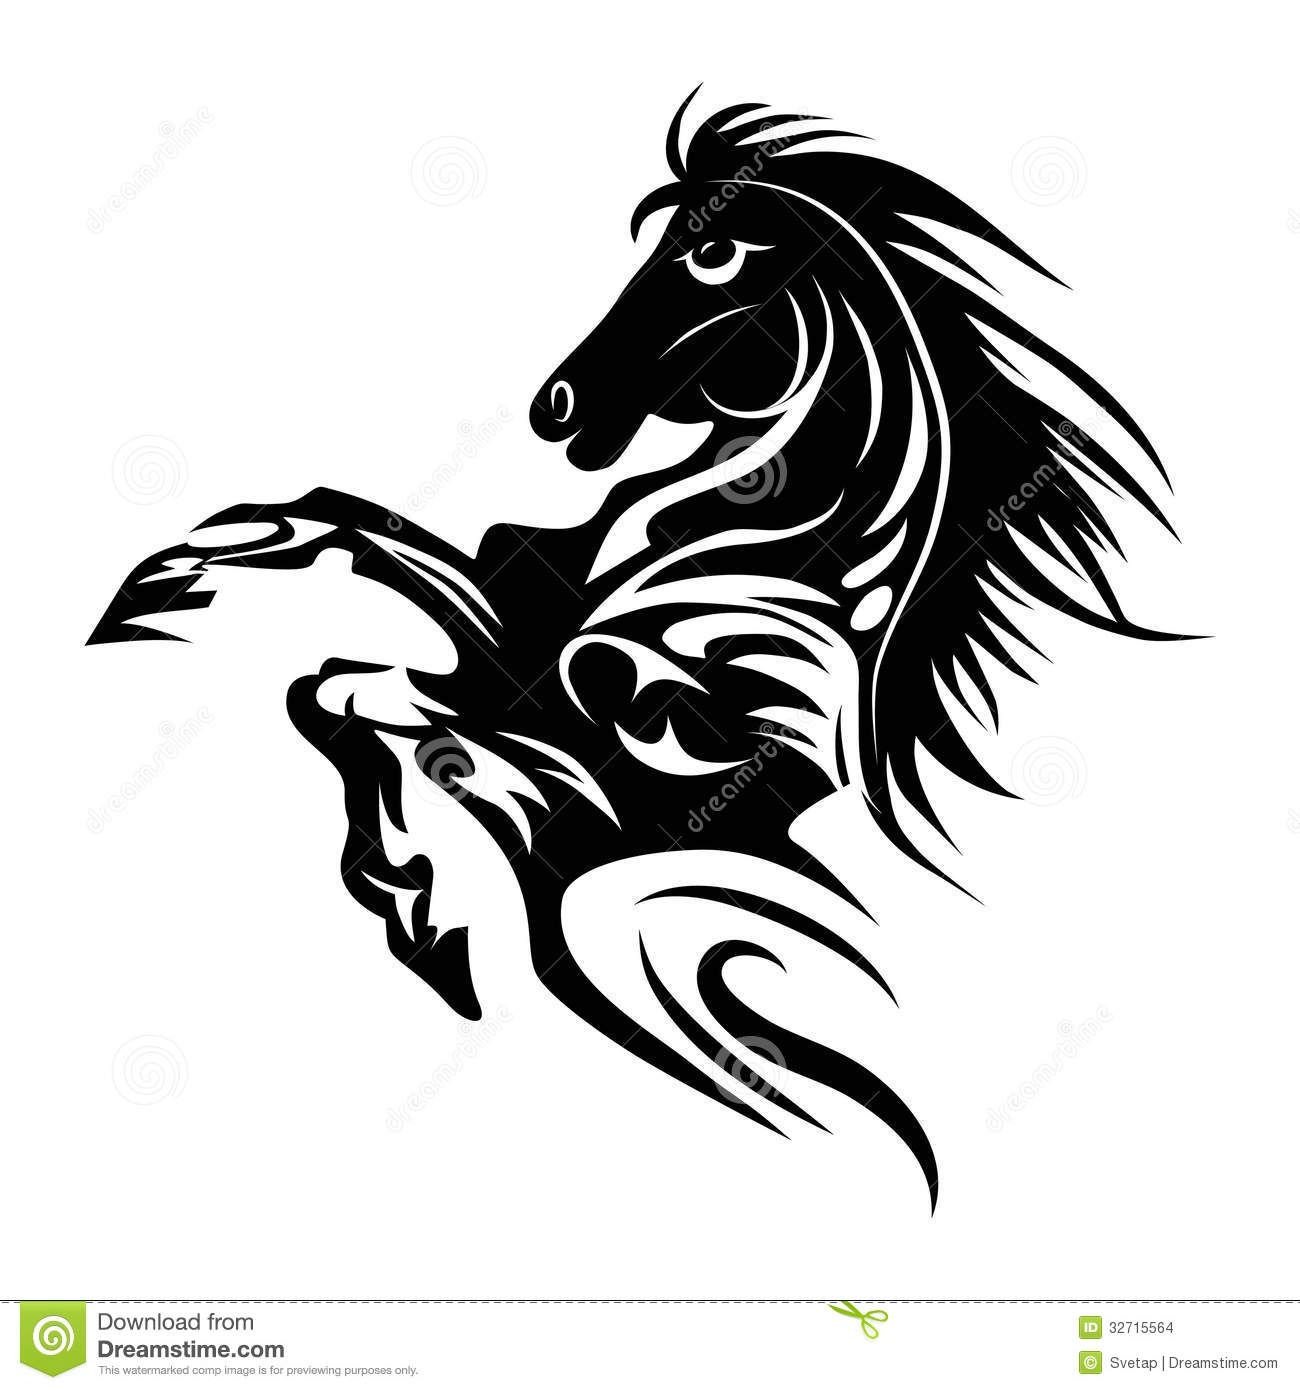 Horse tattoo symbol for design isolated on white emblem or logo horse tattoo symbol for design isolated on white emblem or logo buycottarizona